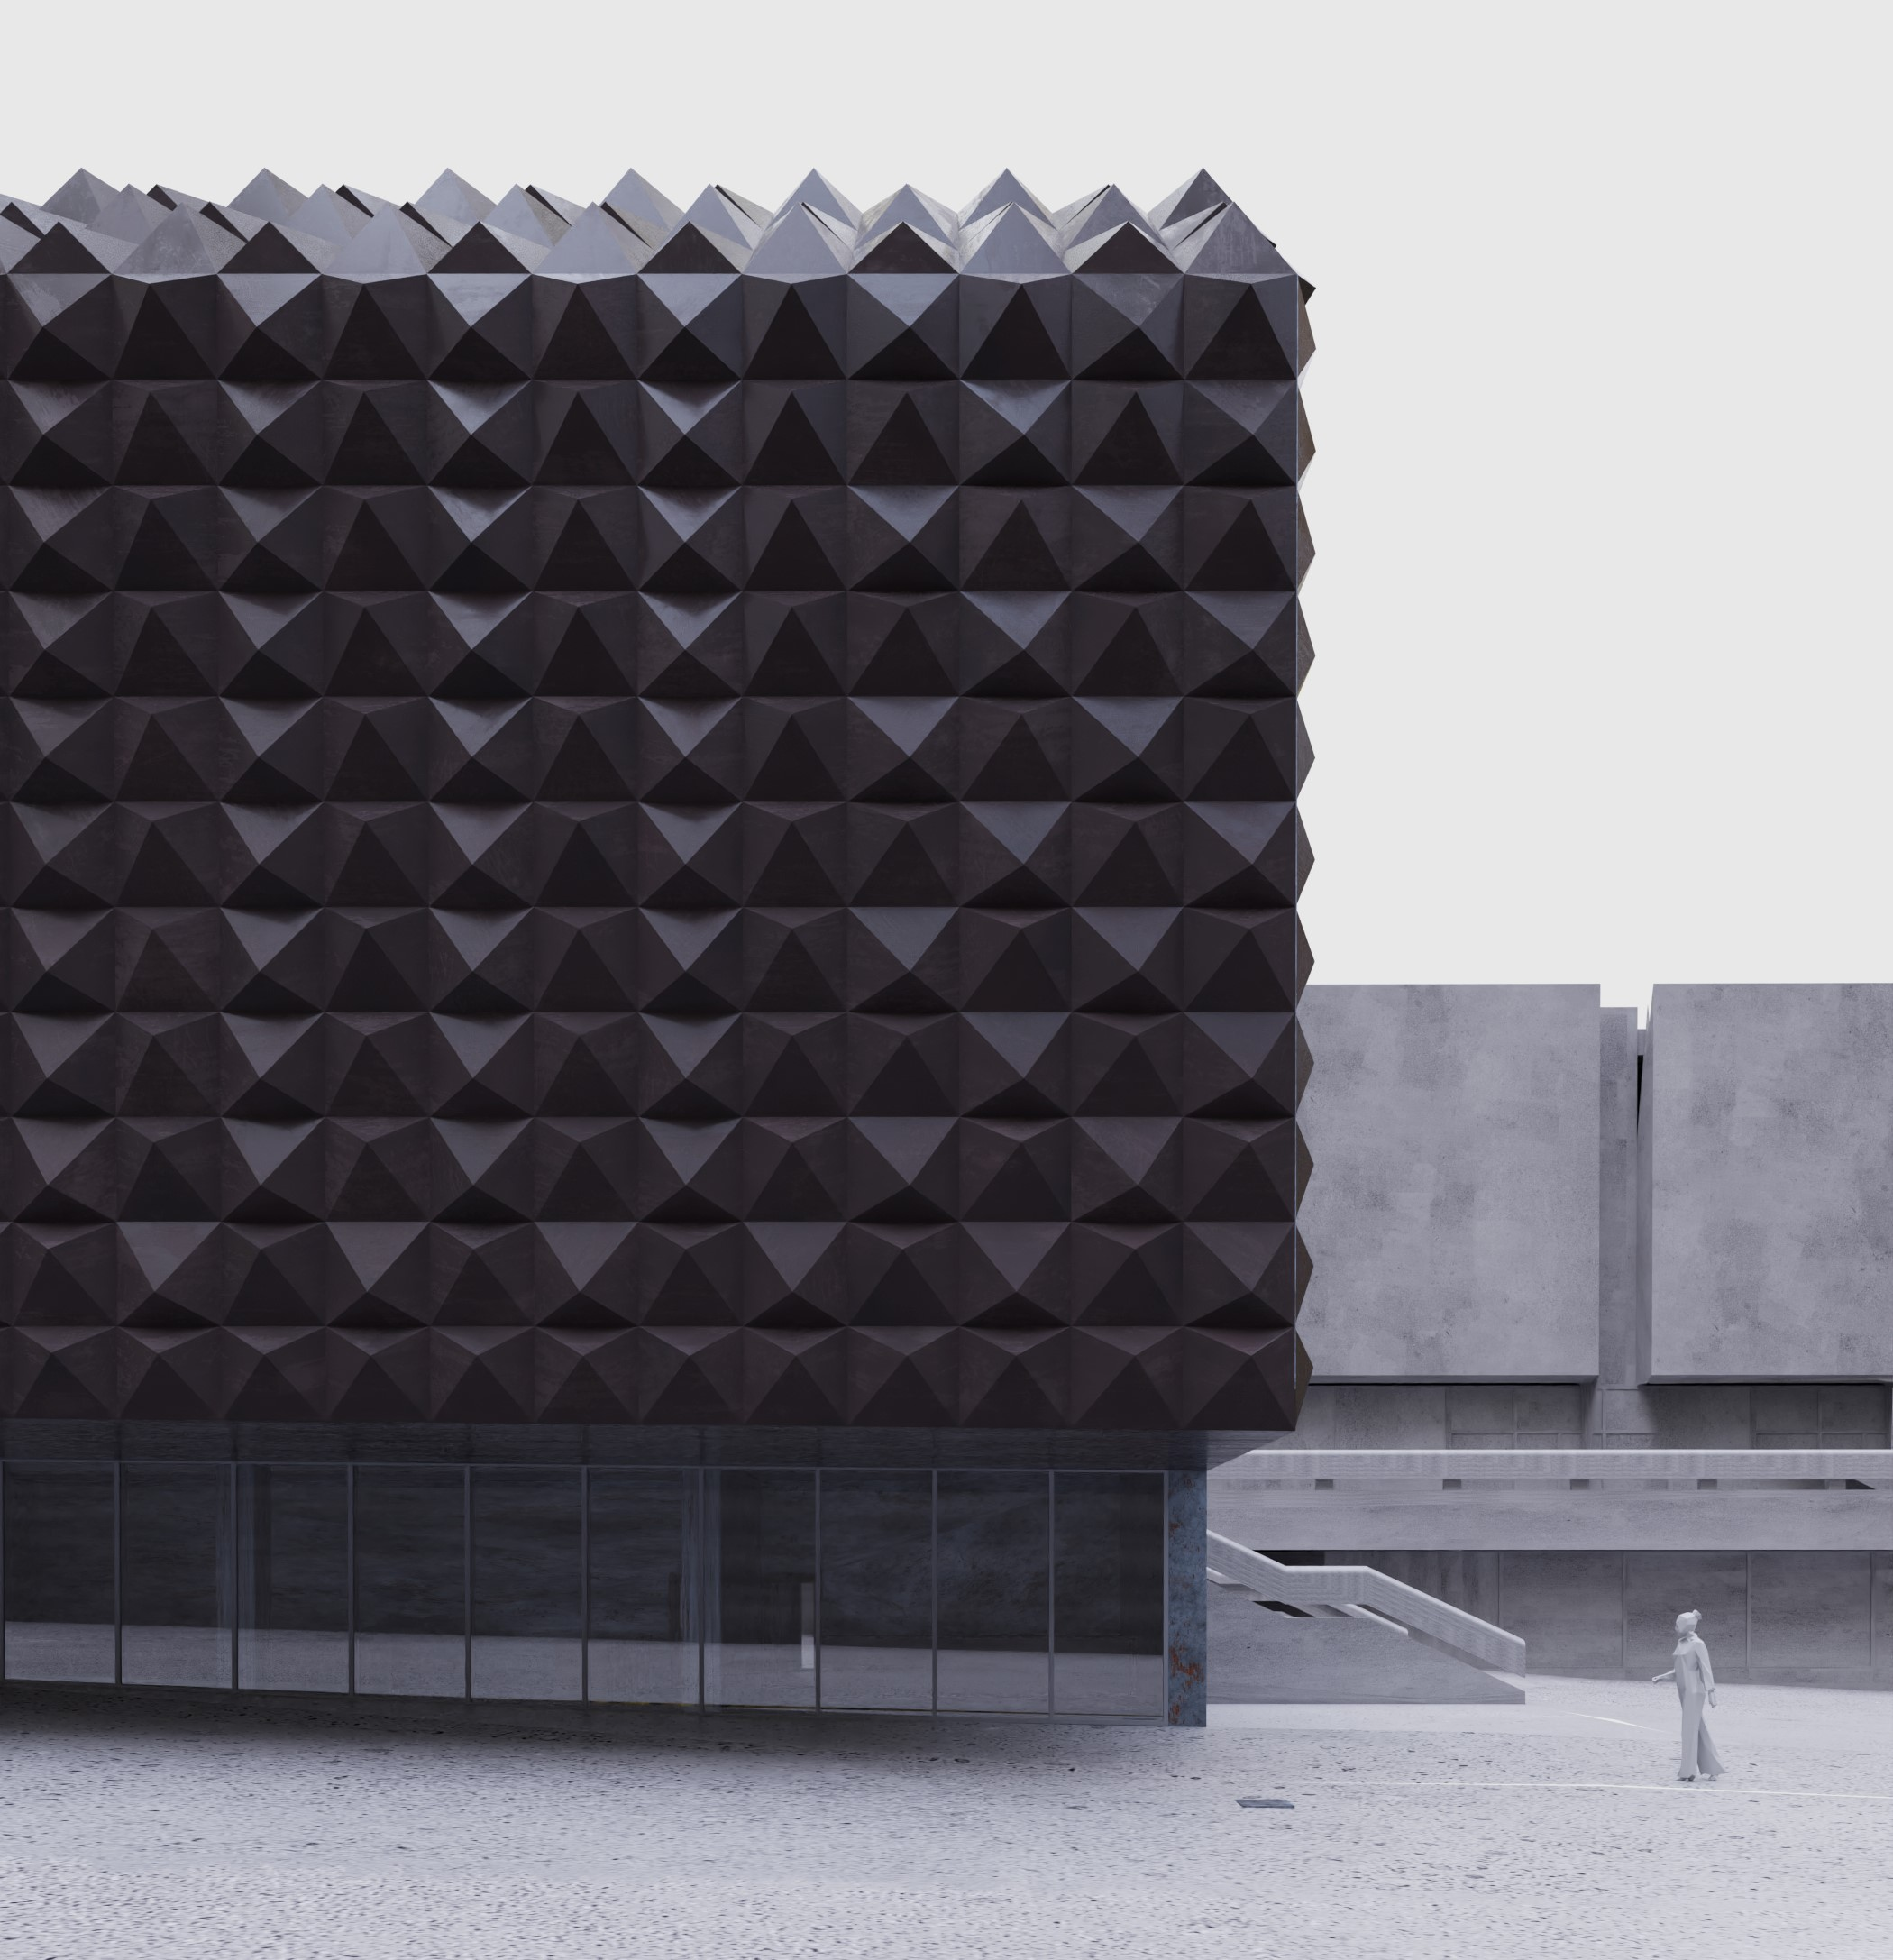 Polyfunction Building /